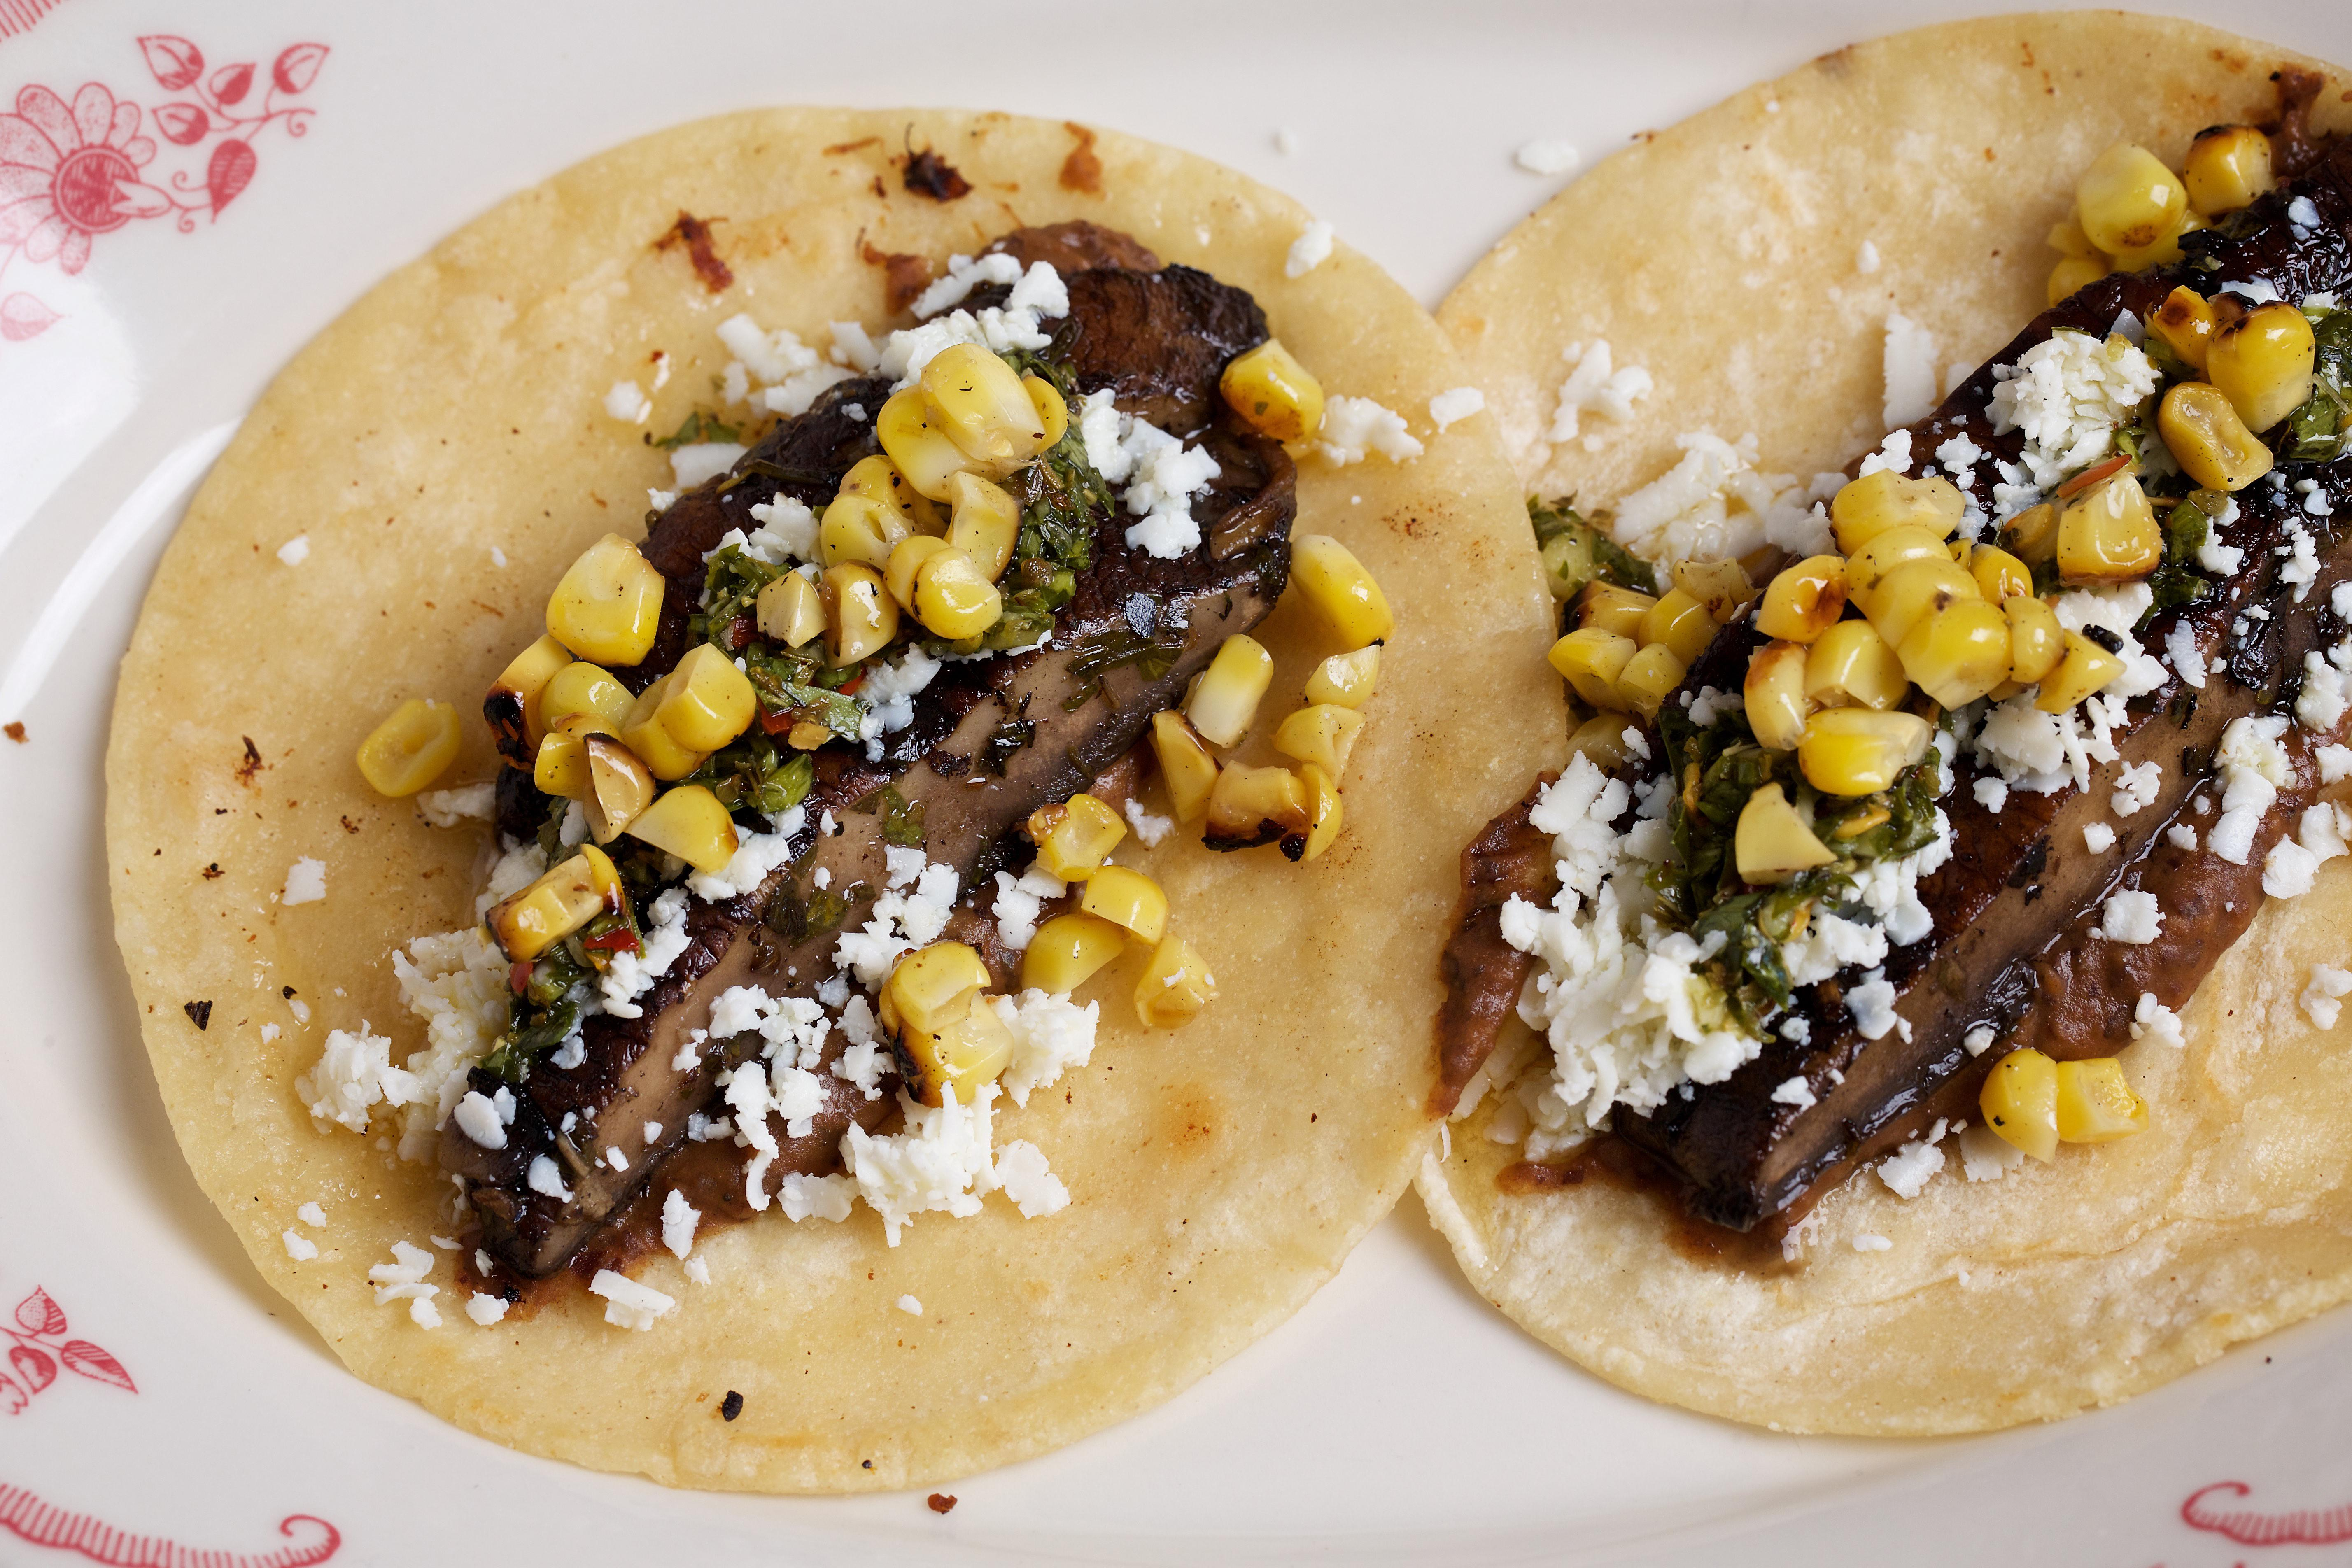 Served on a soft white tortilla, portabella mushrooms are complemented by smoky black bean spread, charred corn, cotija cheese, fresh cilantro and another smack of chimichurri sauce.(Image: Courtesy Deb Lindsey)